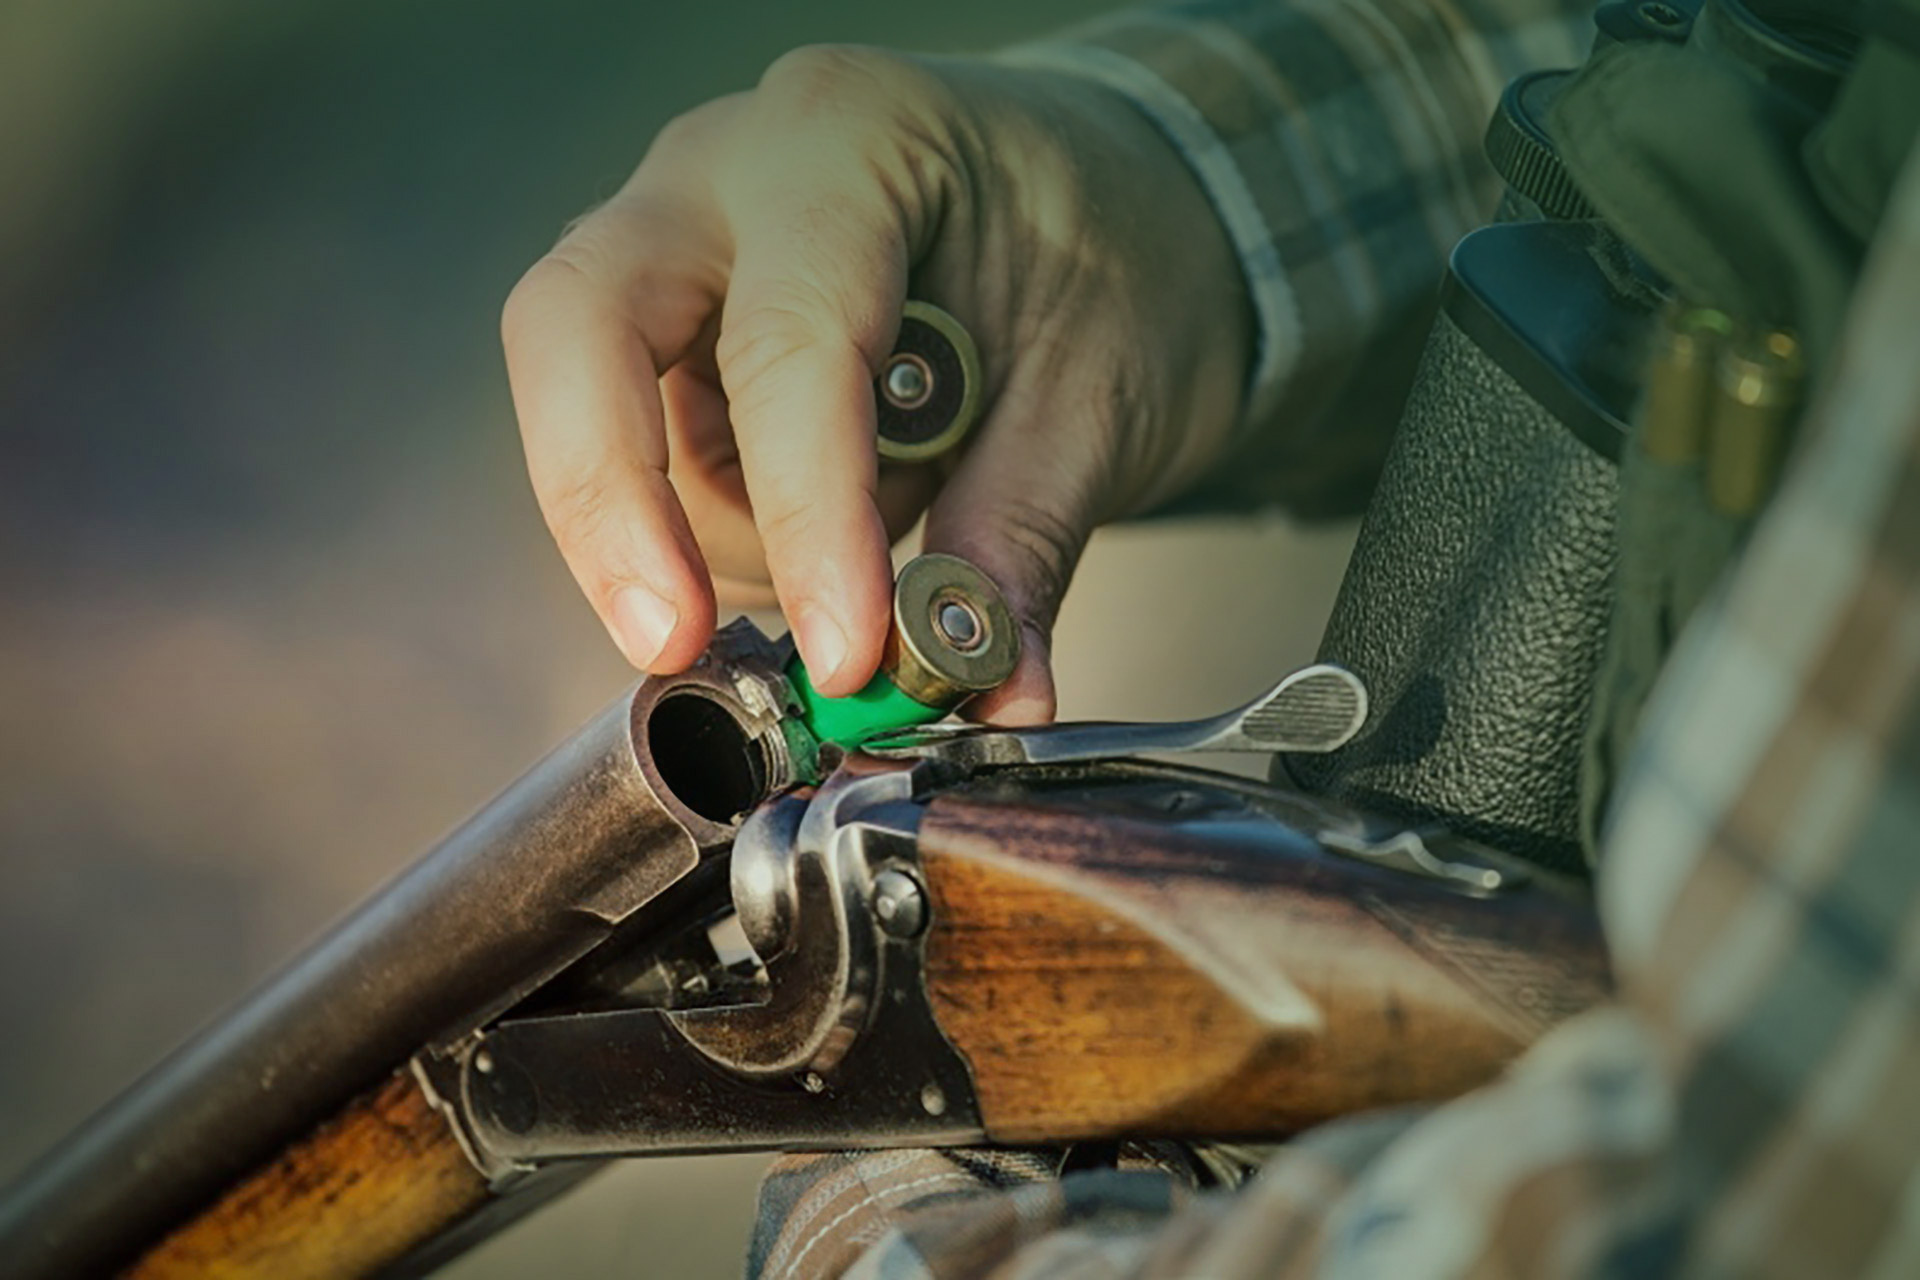 GUIDANCE ON MANAGING RISKS FROM LEAD AMMUNITION